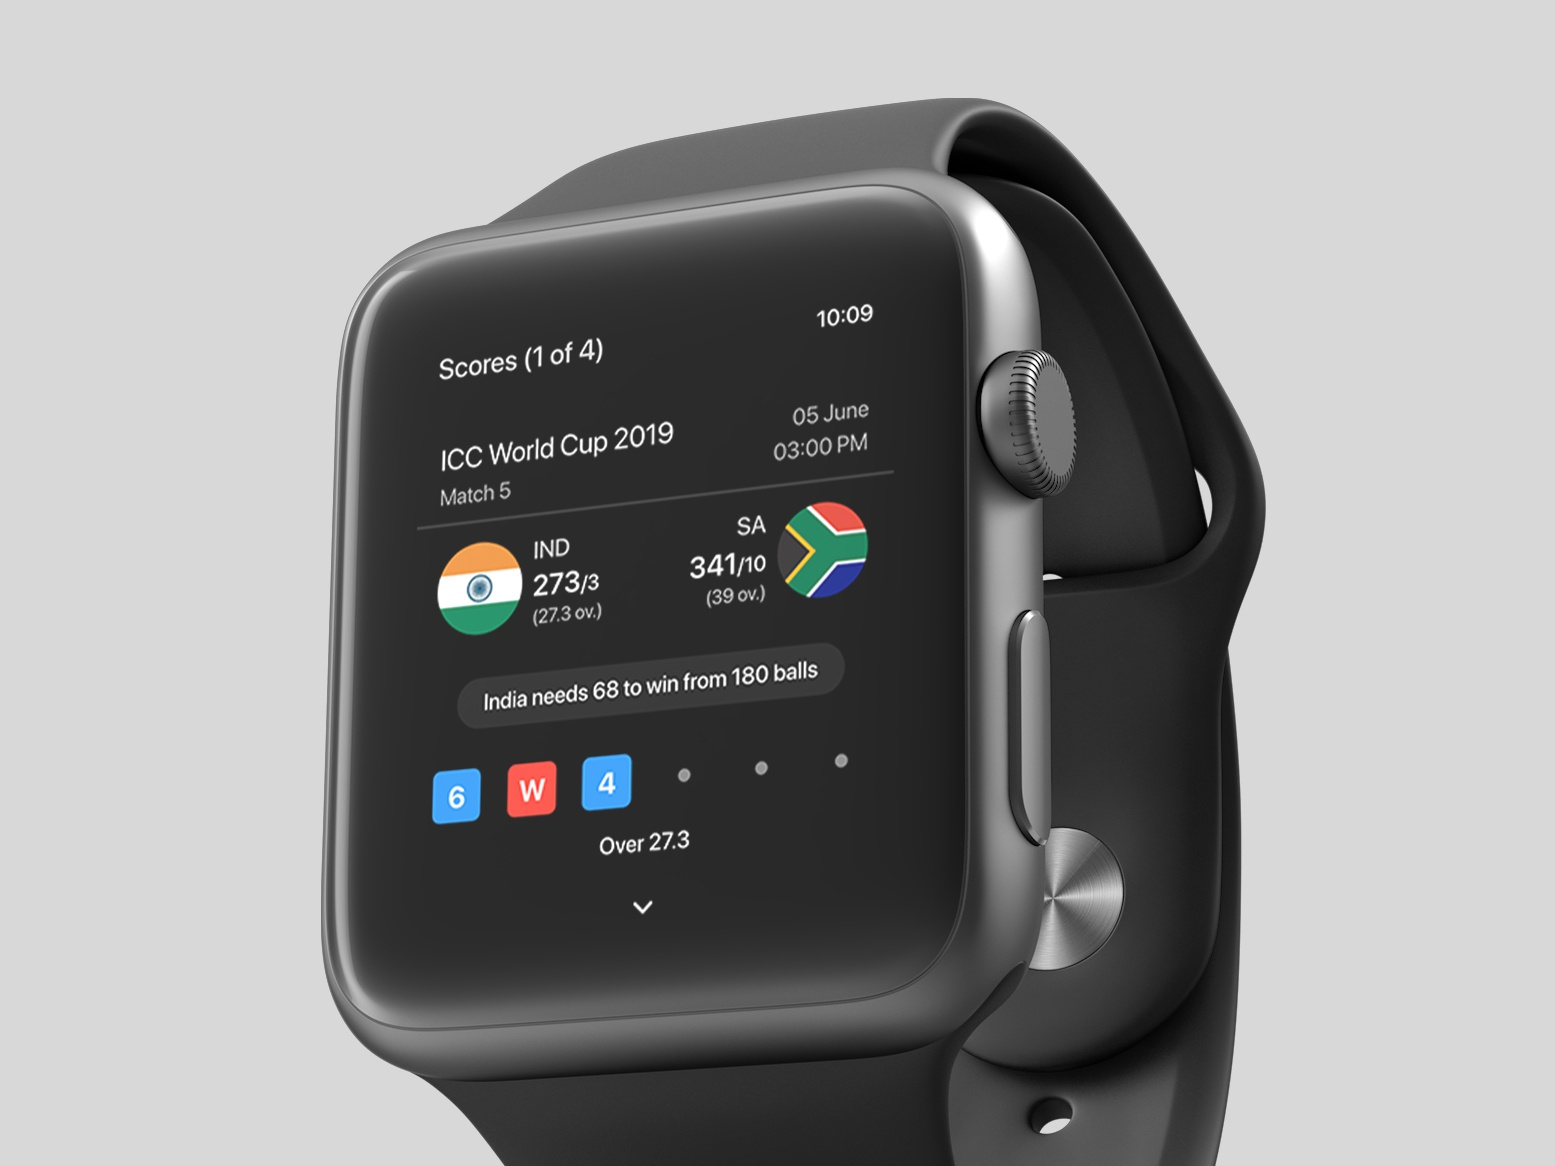 Cricket Scores - Watch Concept apple live match scores cricket wearables wearable apple watch watch app ux ui design